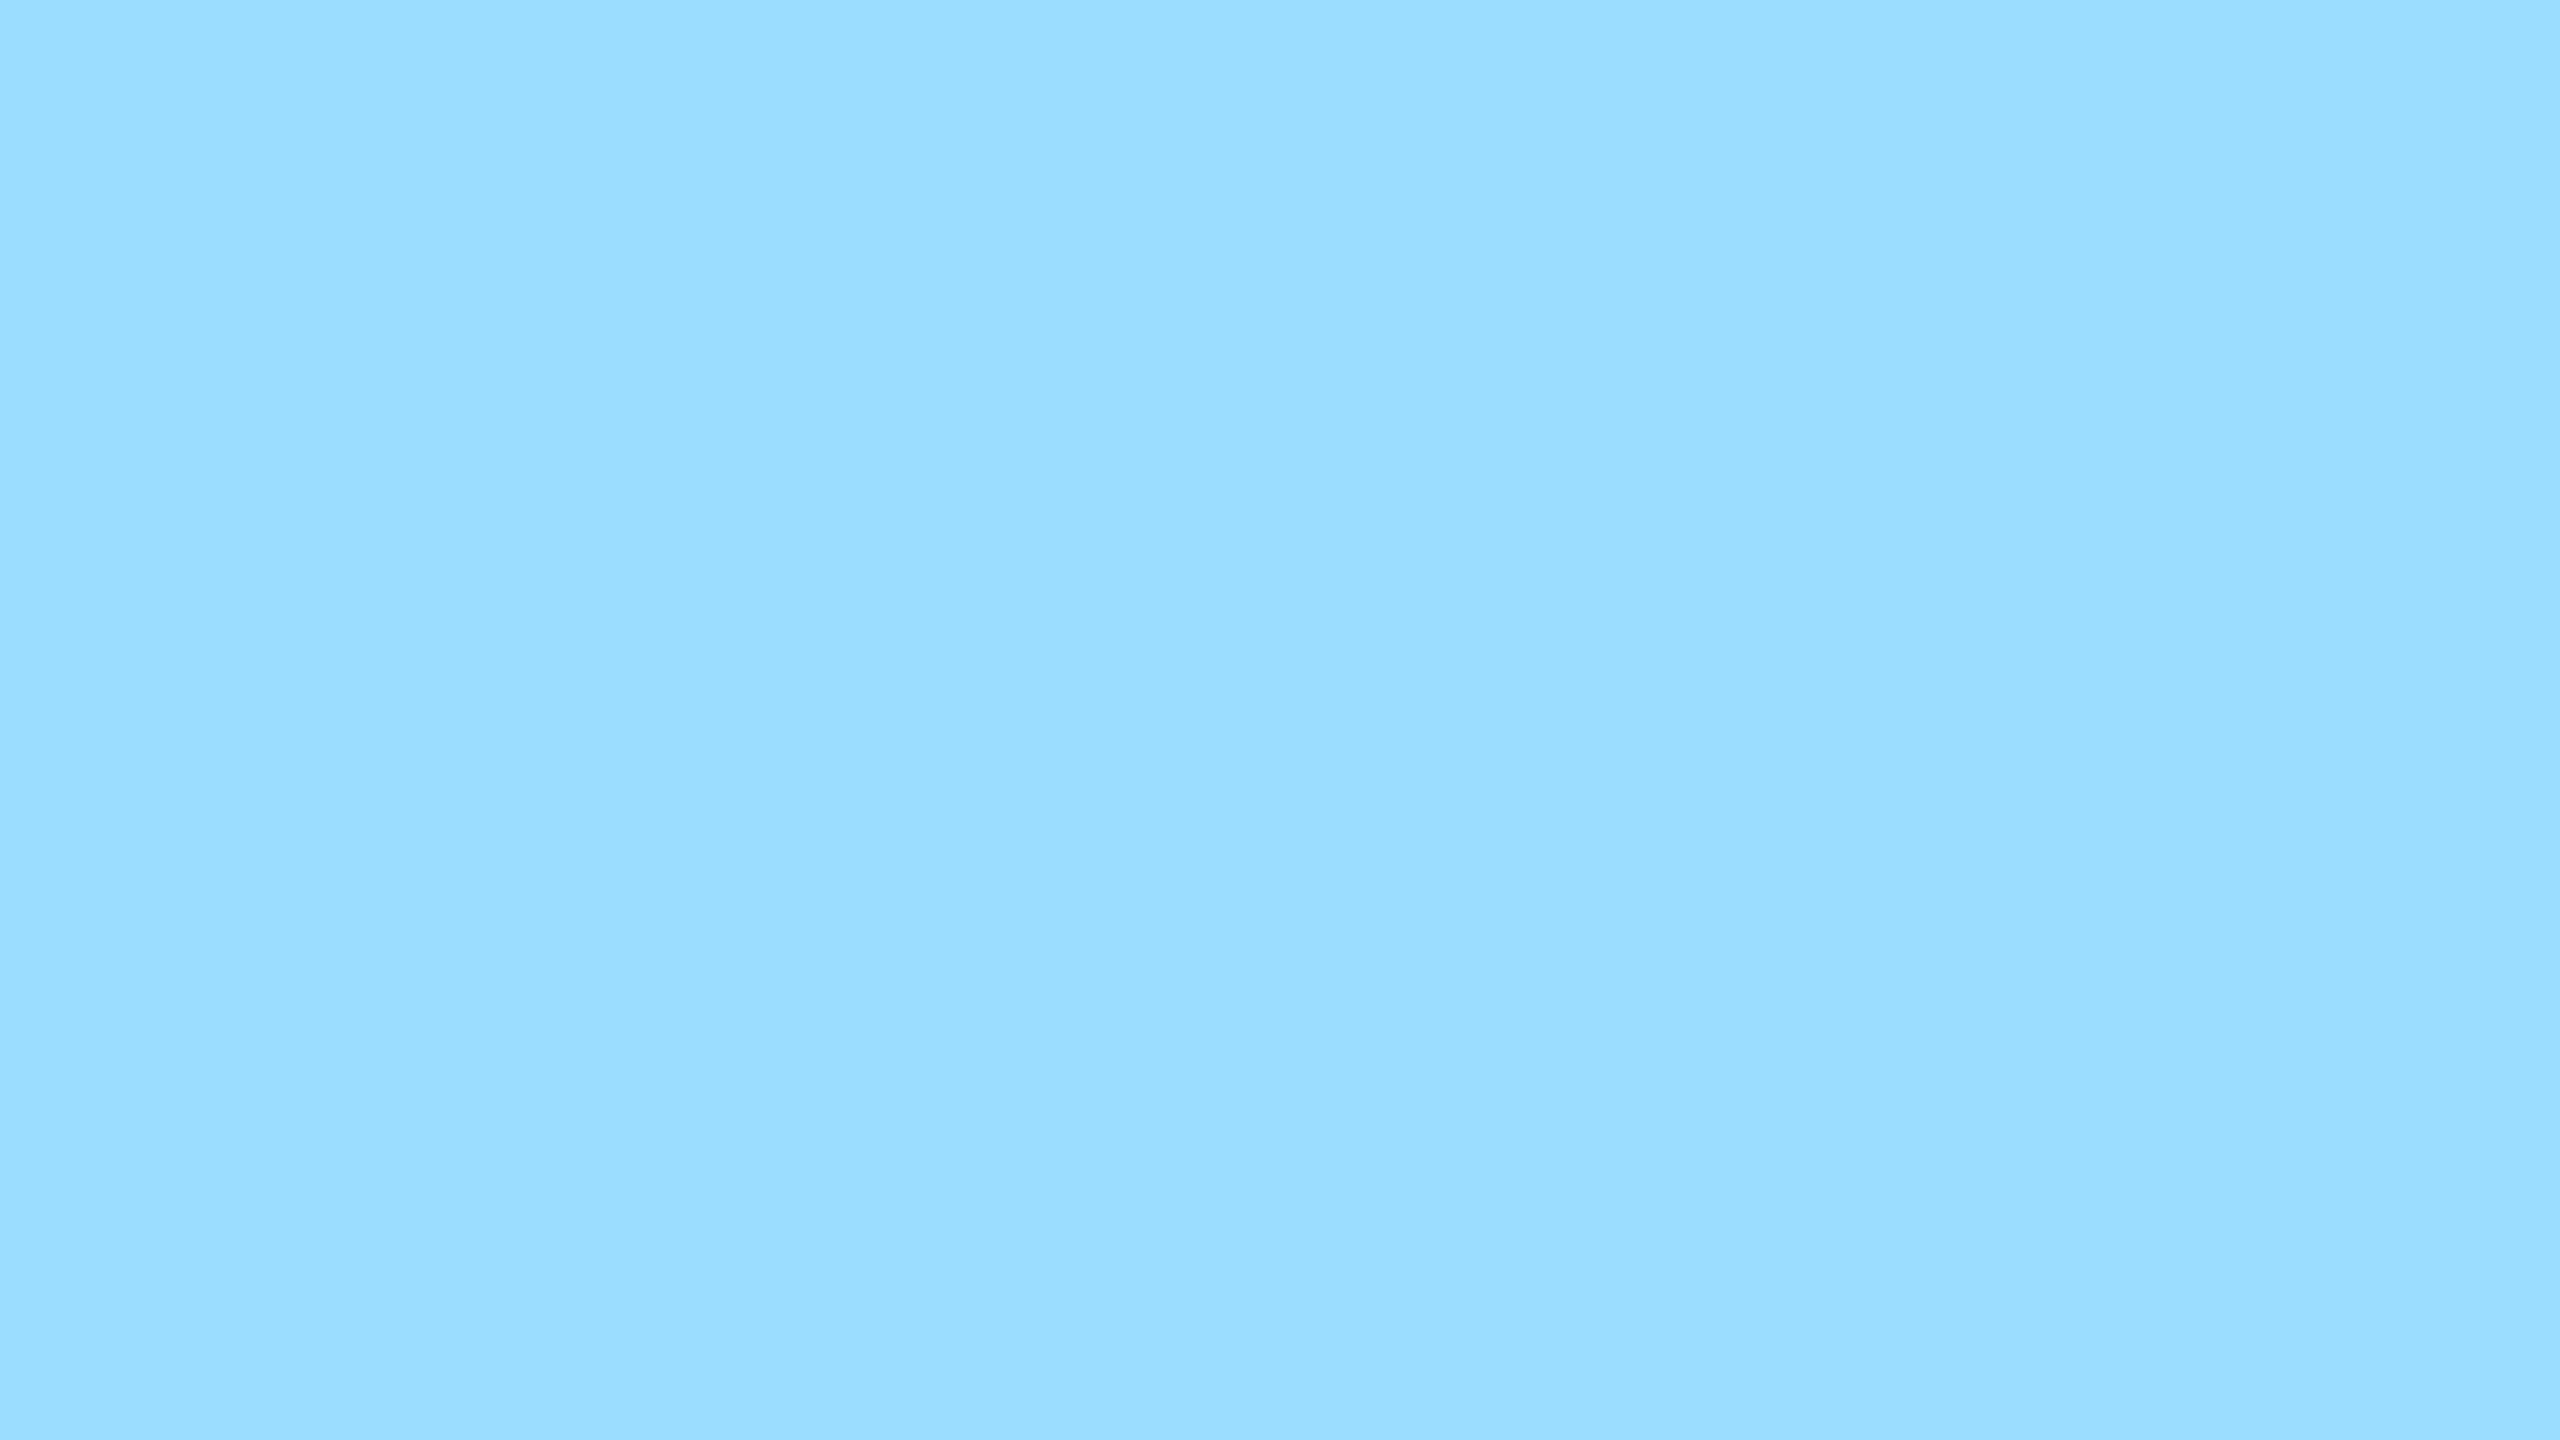 2560x1440 Columbia Blue Solid Color Background